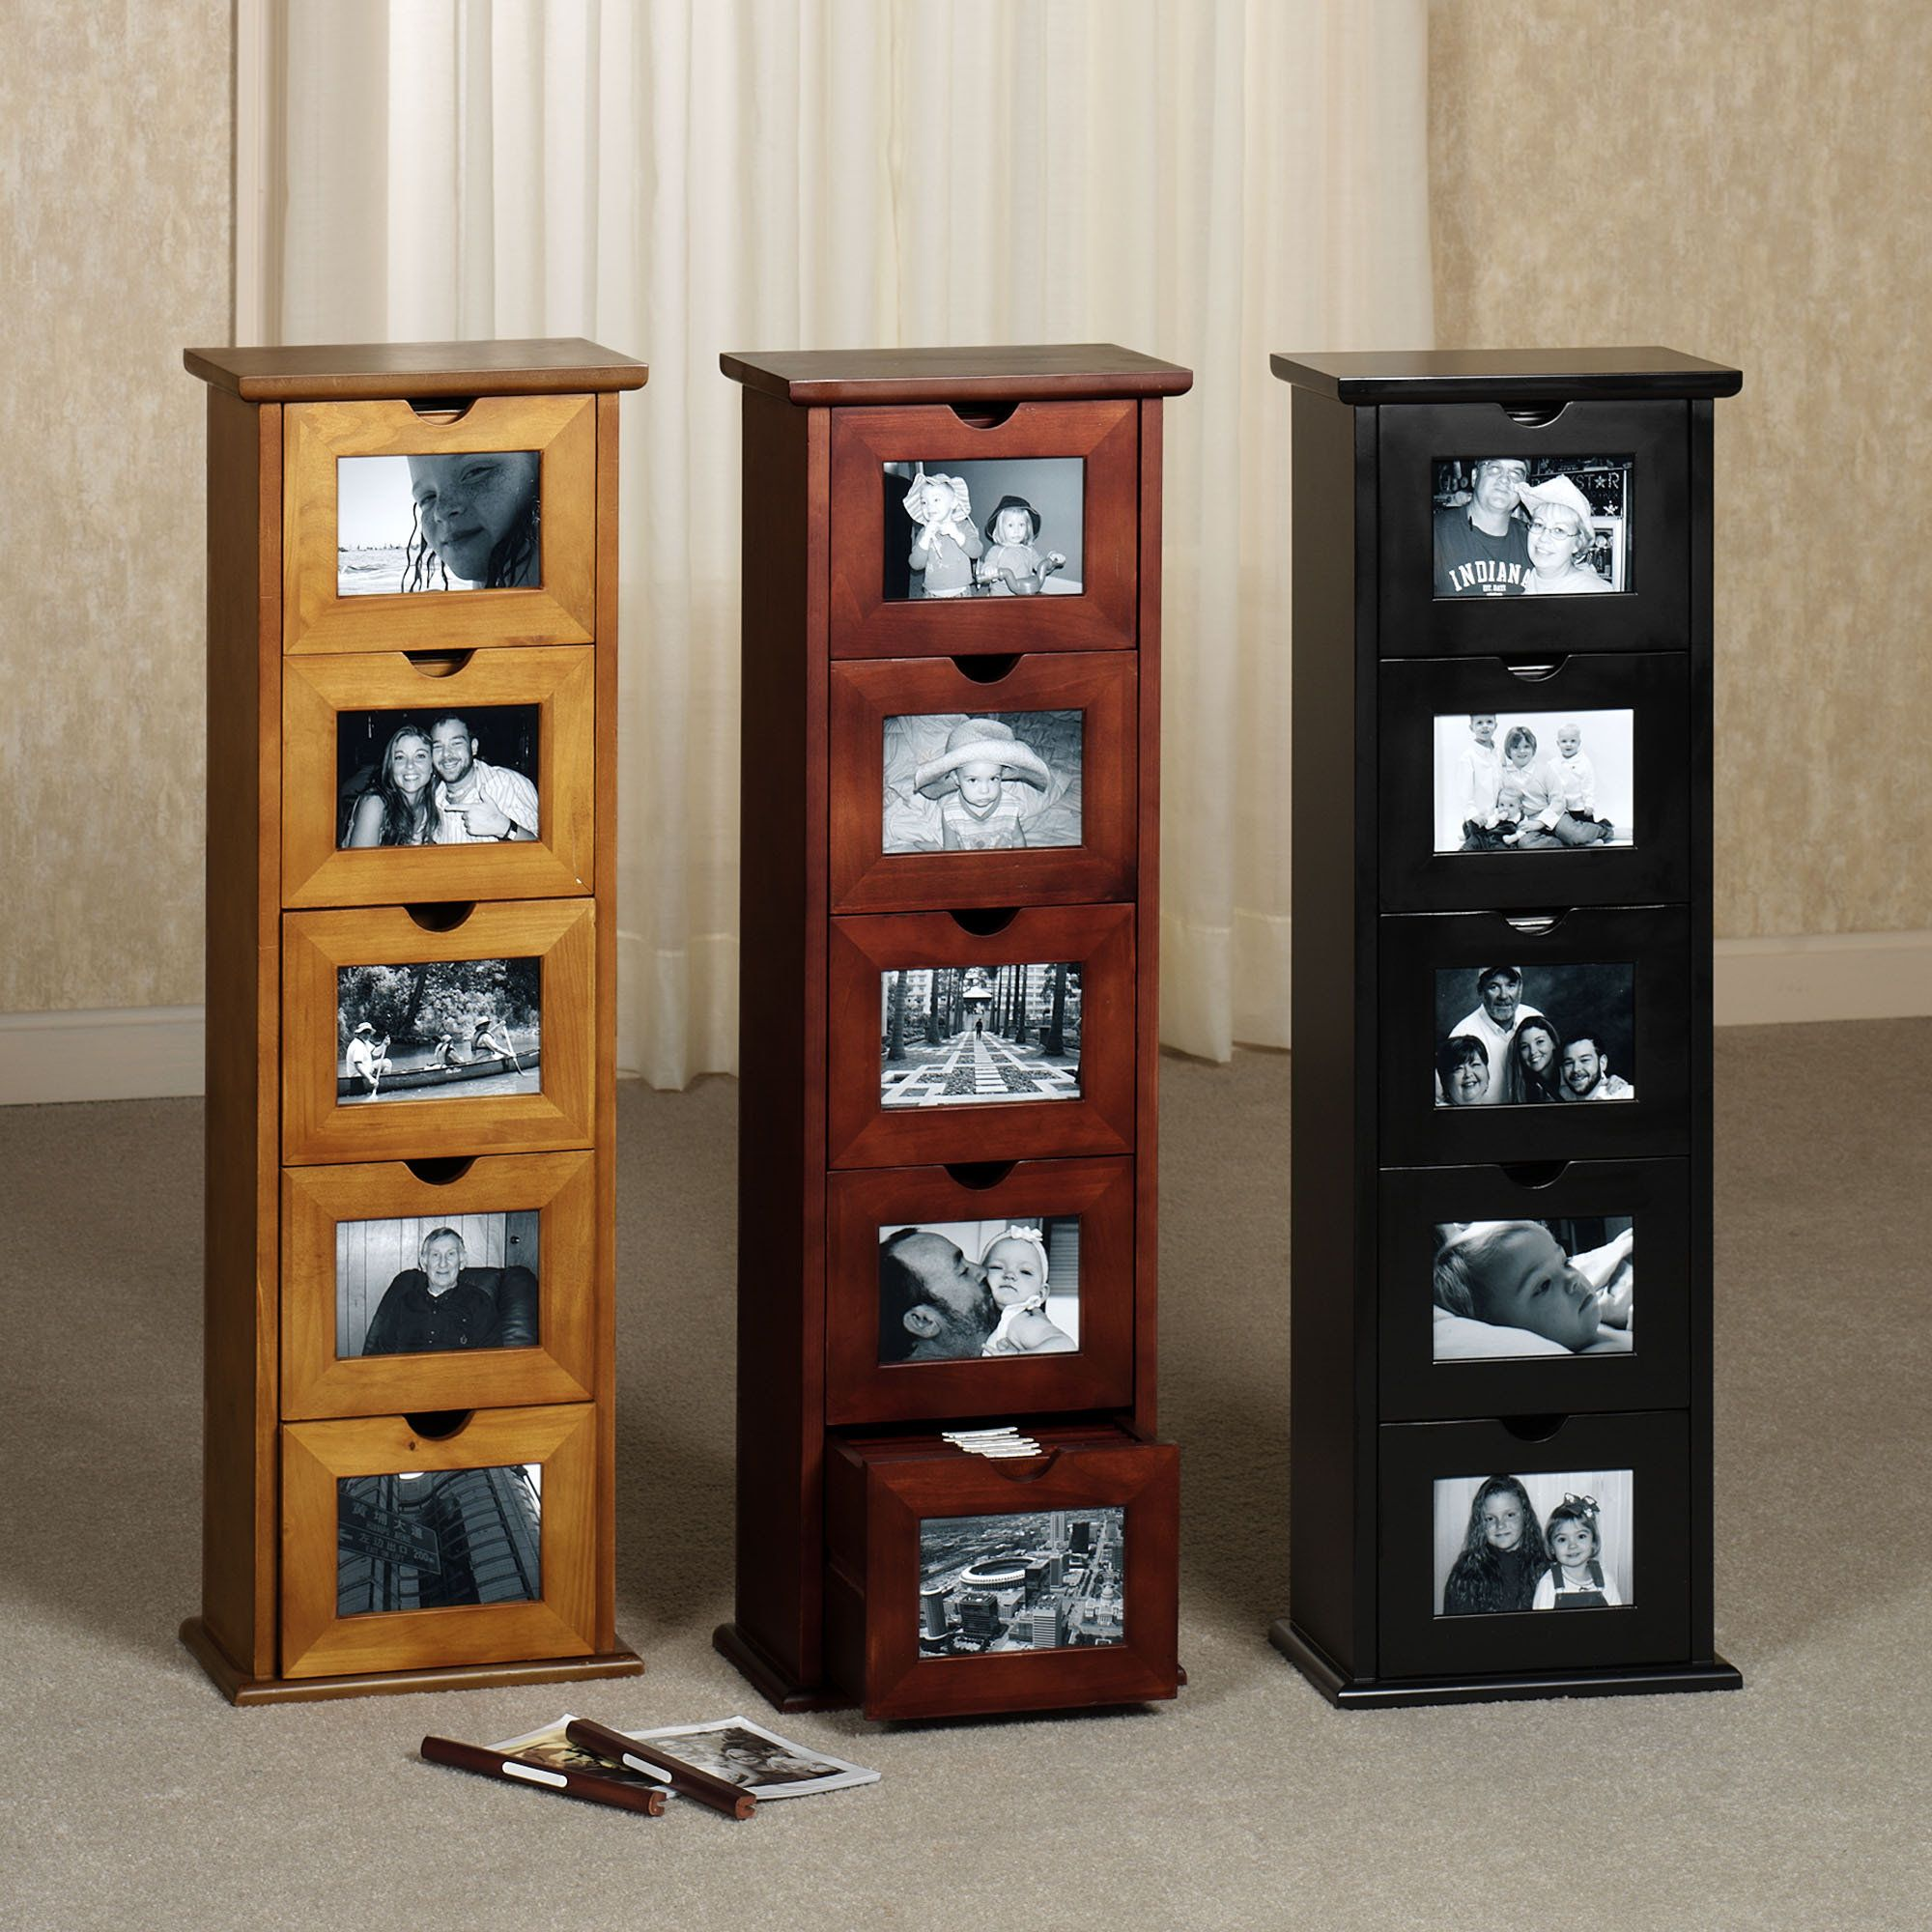 Jackson Photo Cabinet Wooden Storage Has 5 Drawers Each Drawer Contains Als With 14 Sleeves Front And Back To Hold 4 X6 Photos